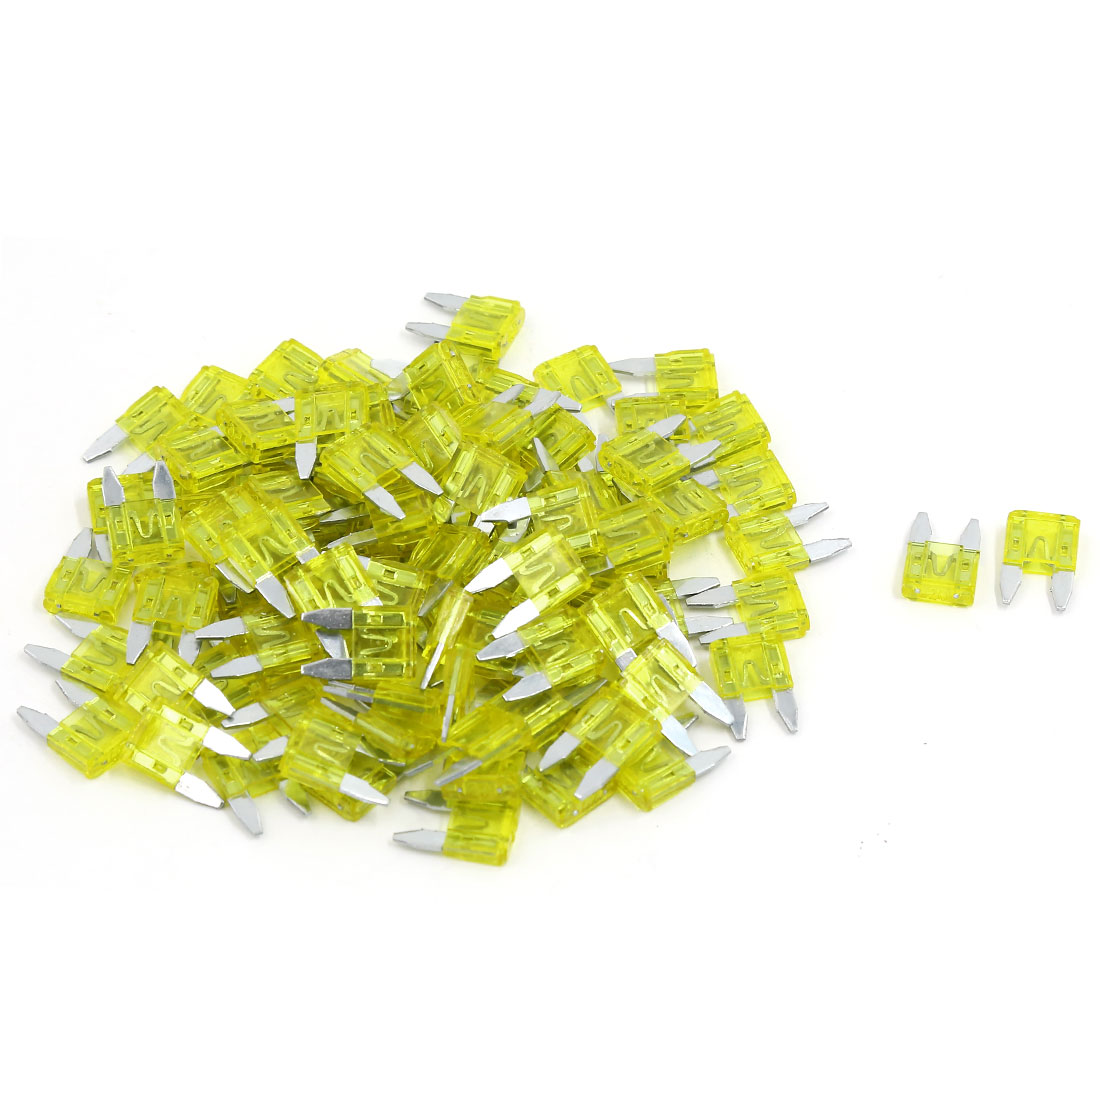 102pcs 20A Yellow Plastic Shell ATC Mini Blade Fuse Fuses for Car SUV Motorcycle